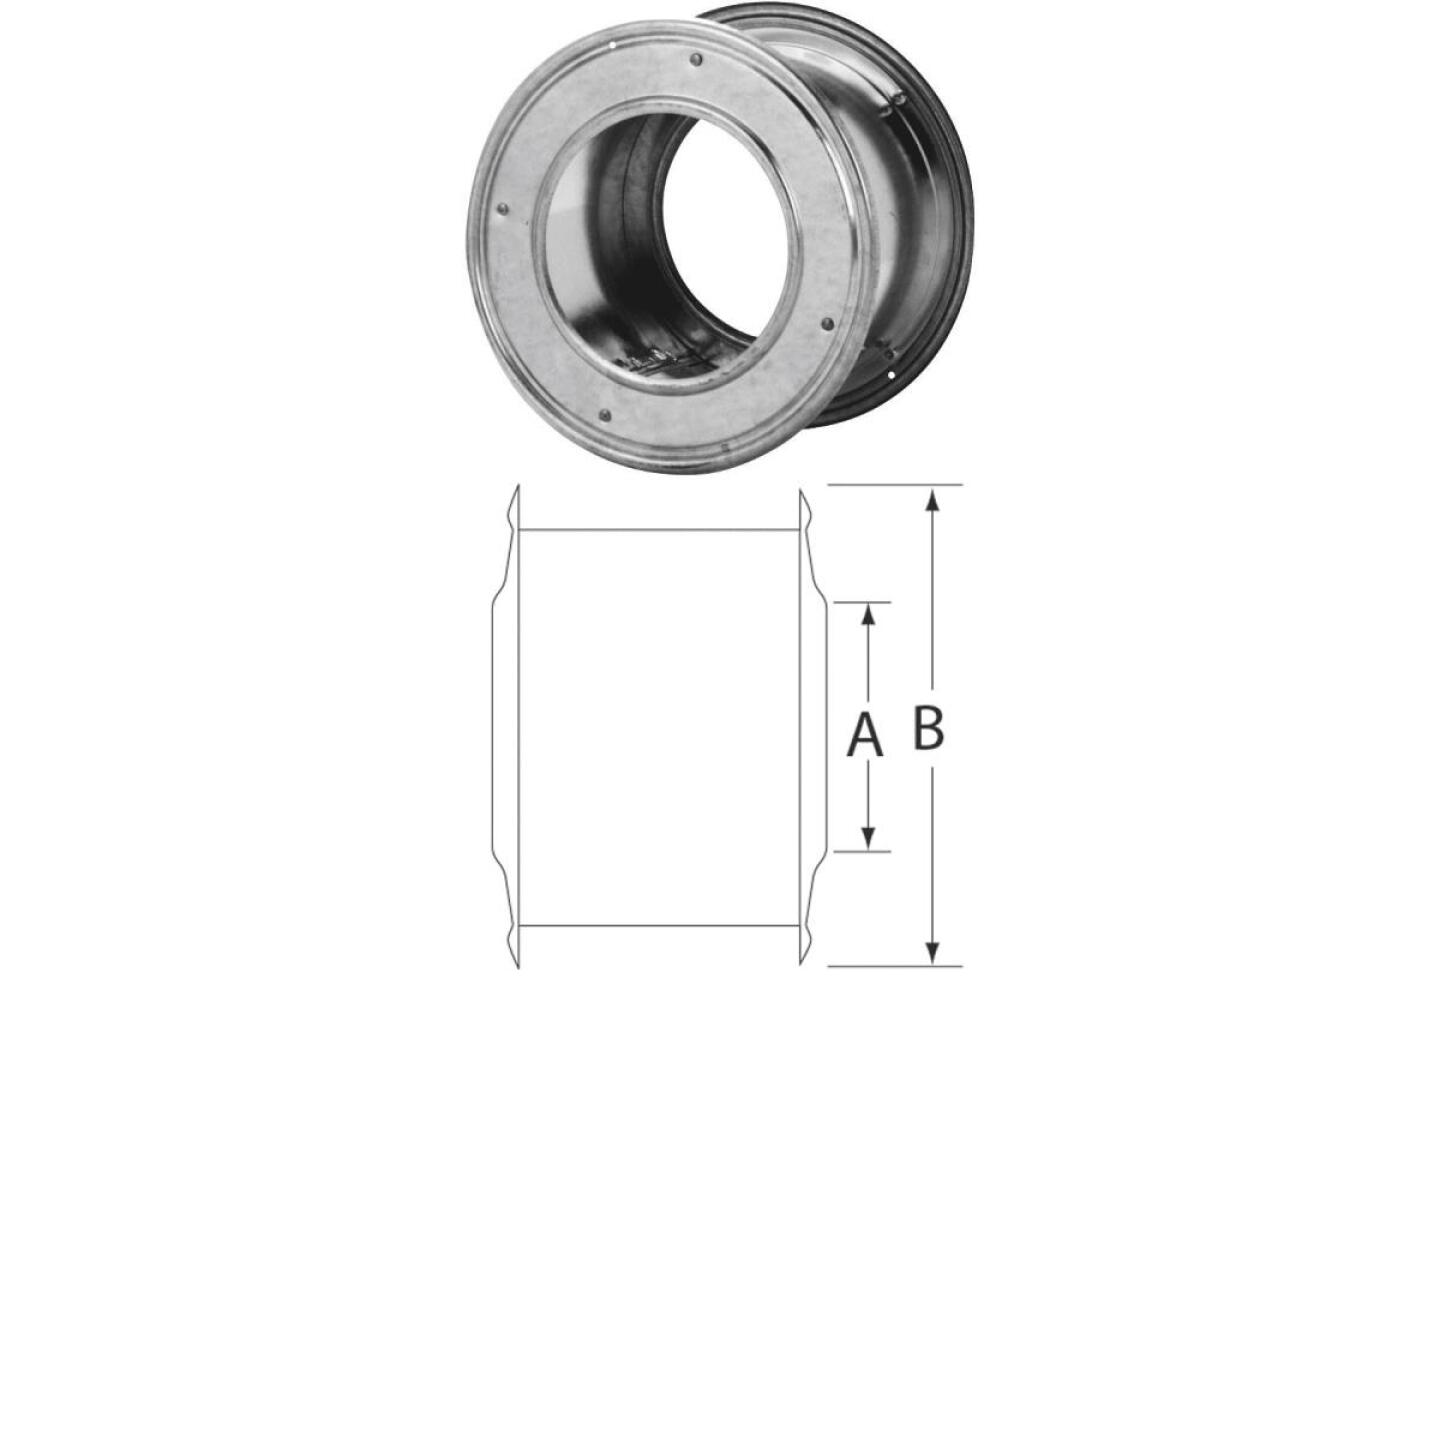 SELKIRK RV 4 In. x 4-5/8 In. Gas Pipe Wall Thimble Image 1